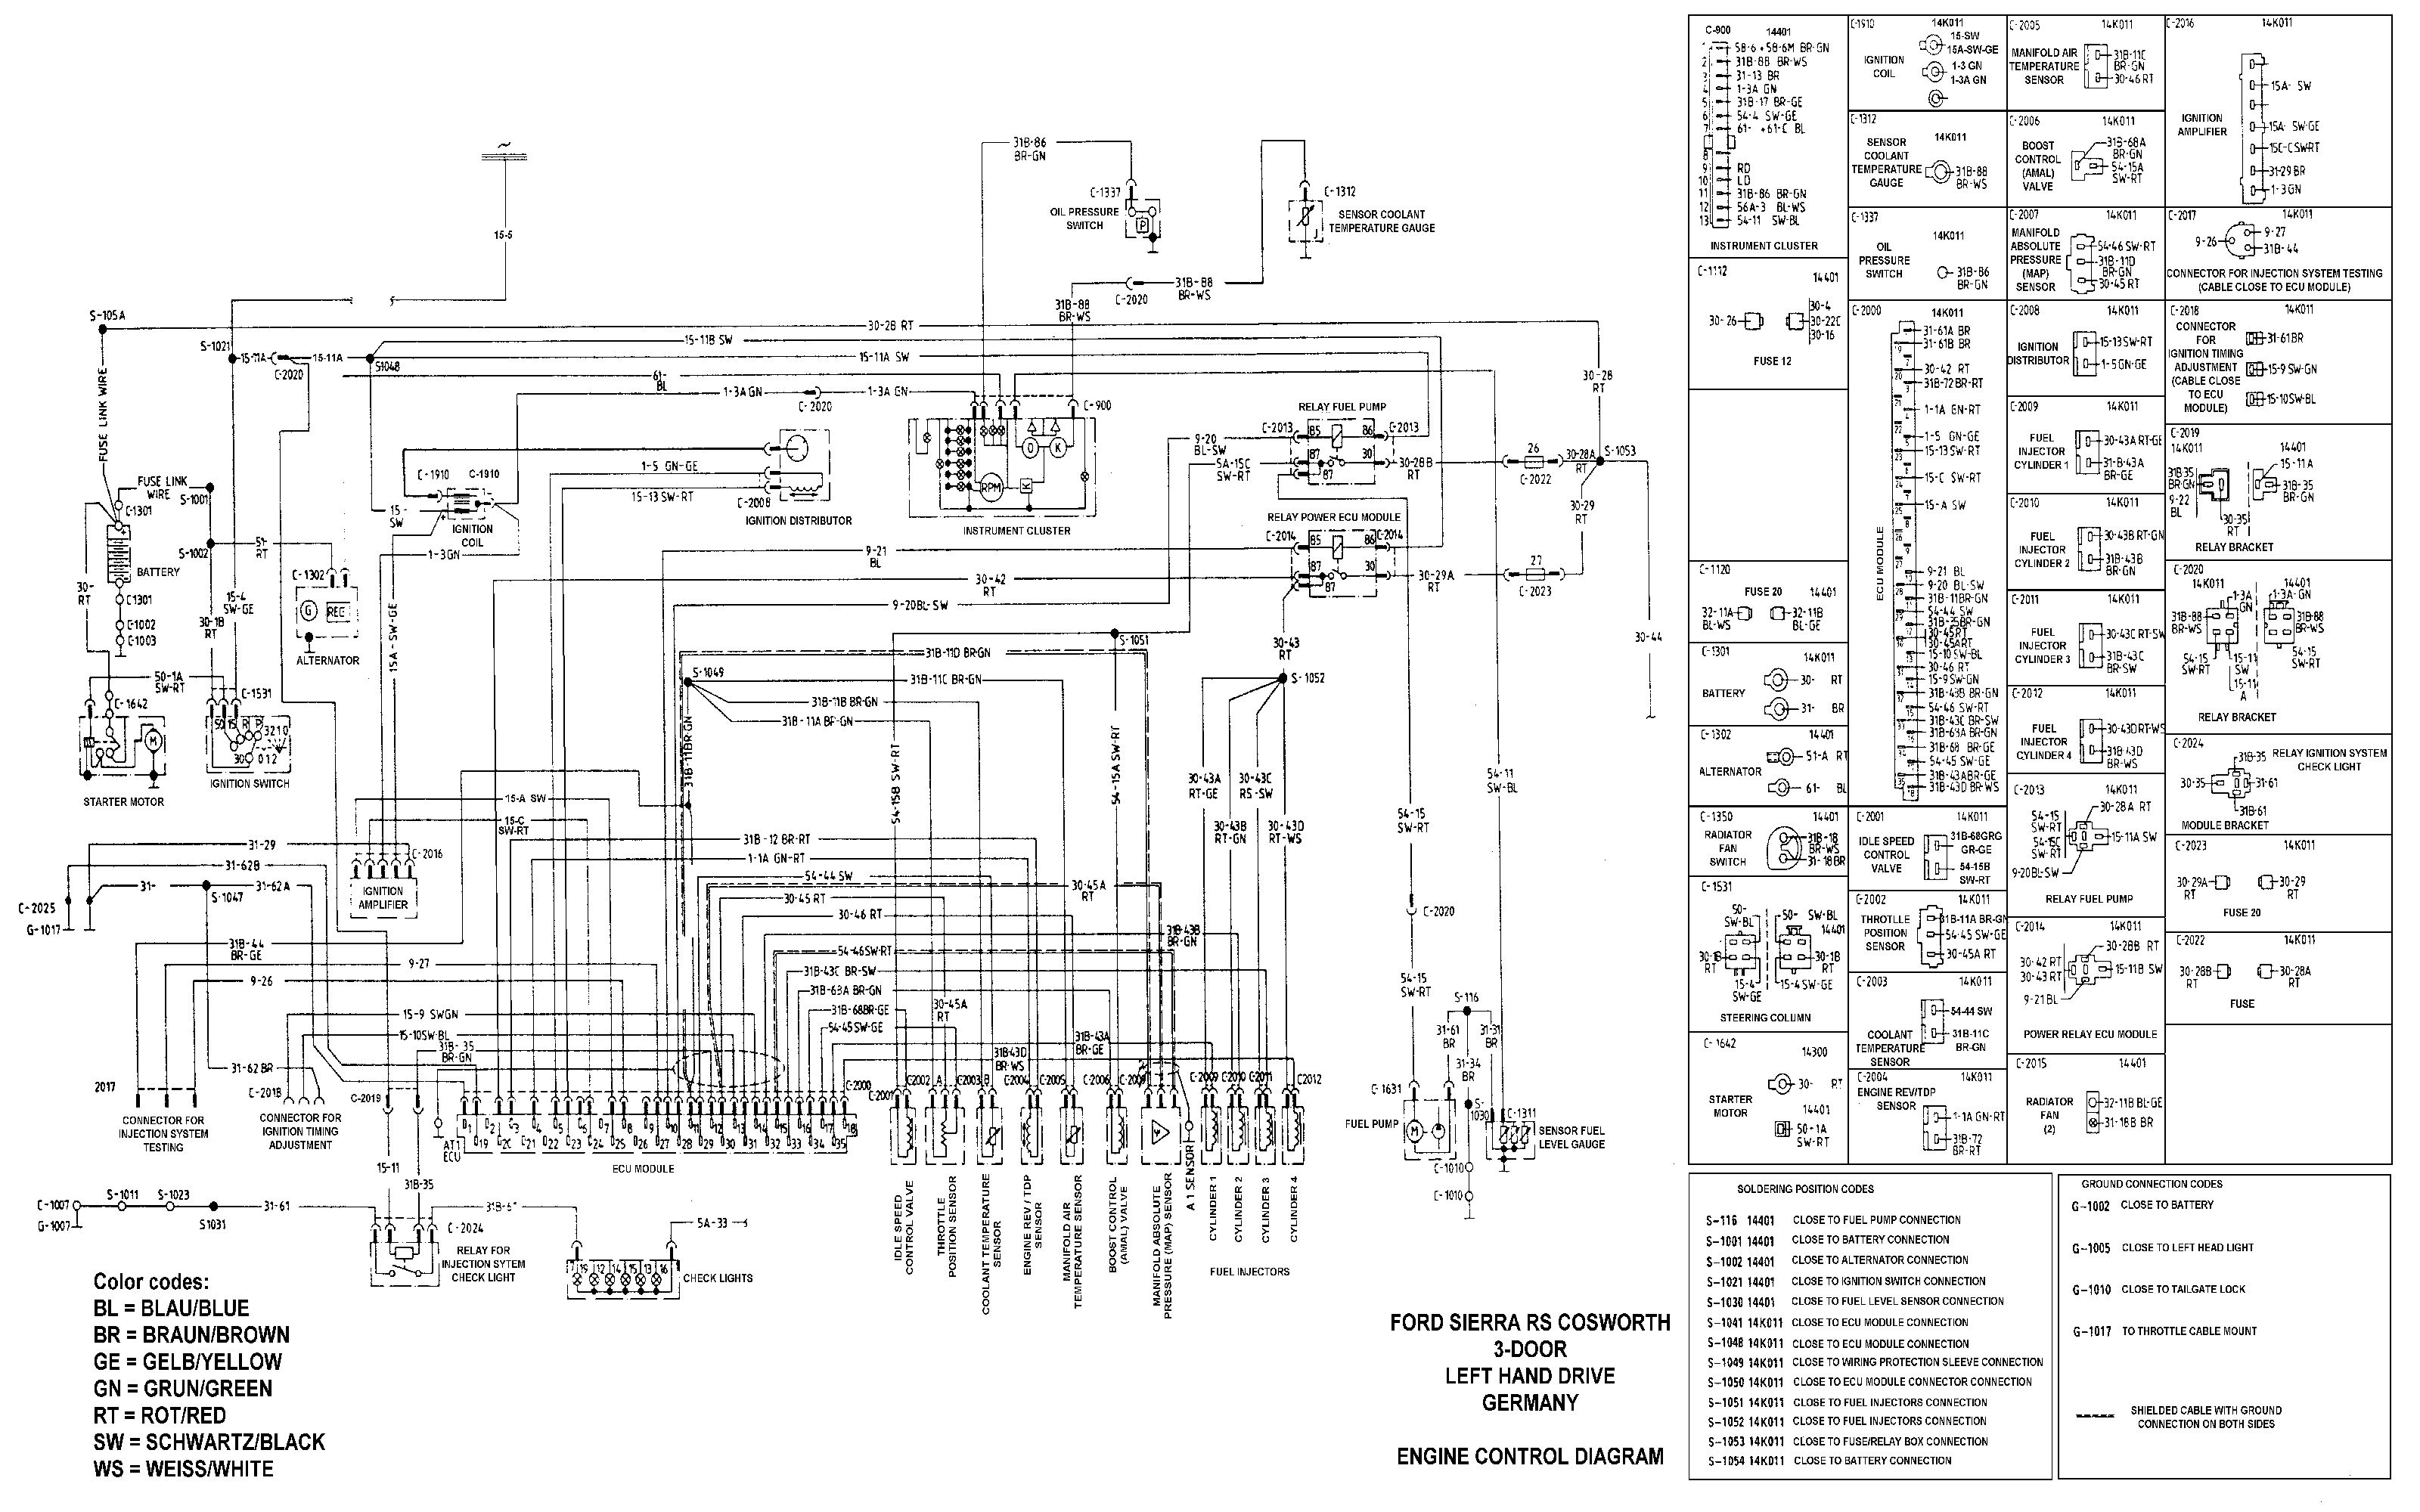 196480 Ford Kuga 2009 Fuse Box Diagram | Wiring LibraryWiring Library